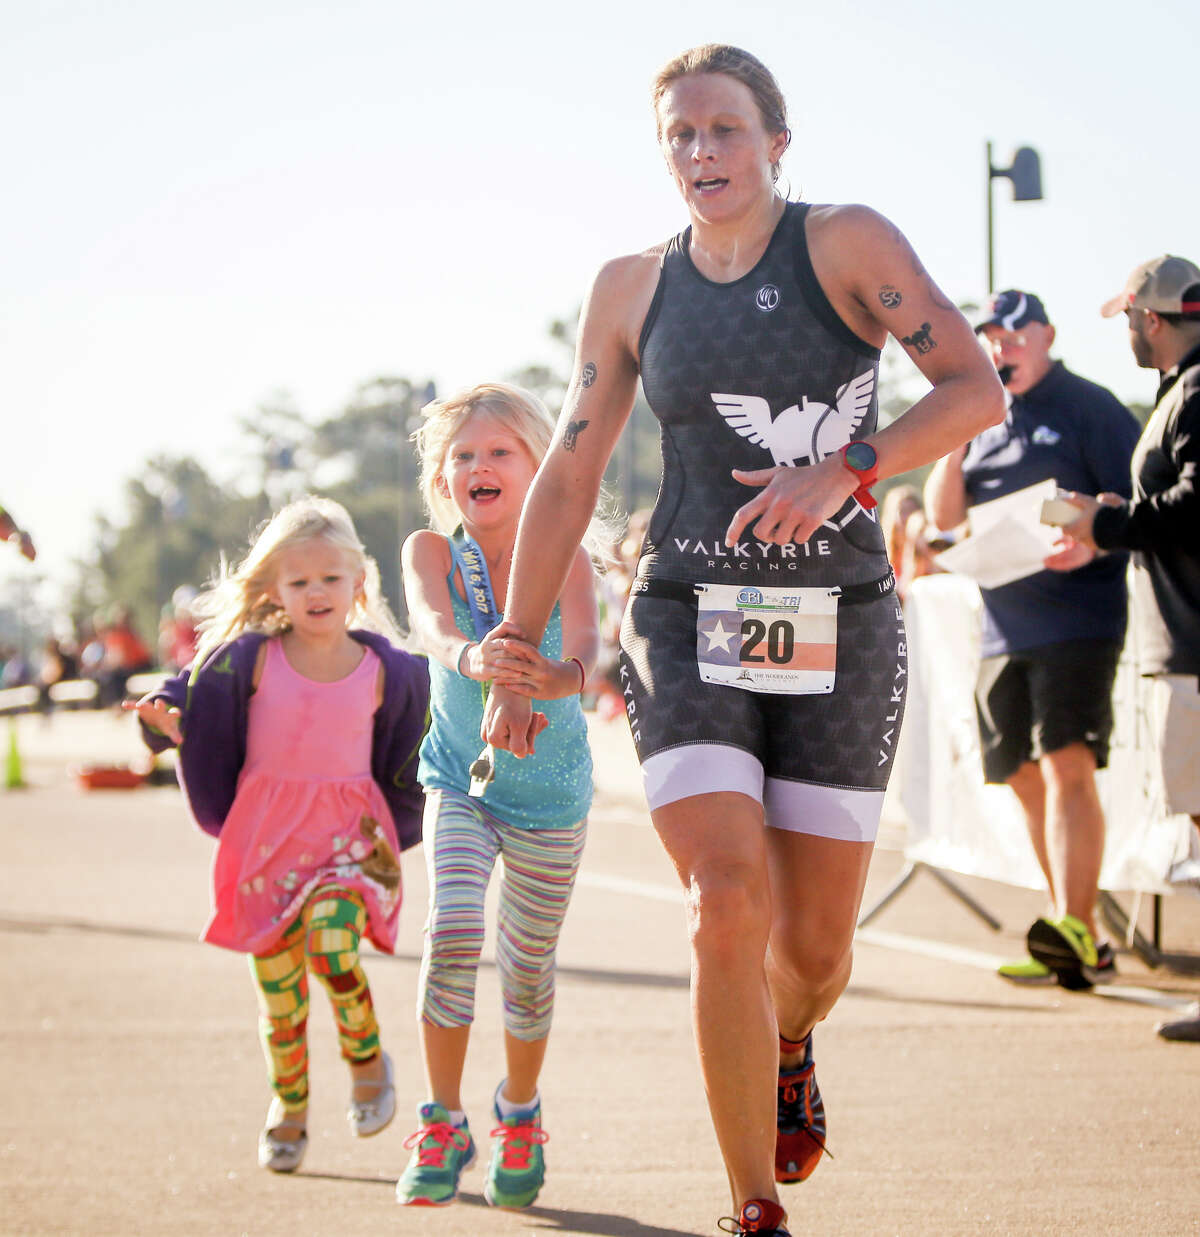 Triathlete Emily Finanger approaches the finish line as the first female finisher, joined by her daughters Kaia, 6, and Elin, 3, during the CB&I TRI - The Woodlands Triathlon on Saturday, May 6, 2017, at Northshore Park.